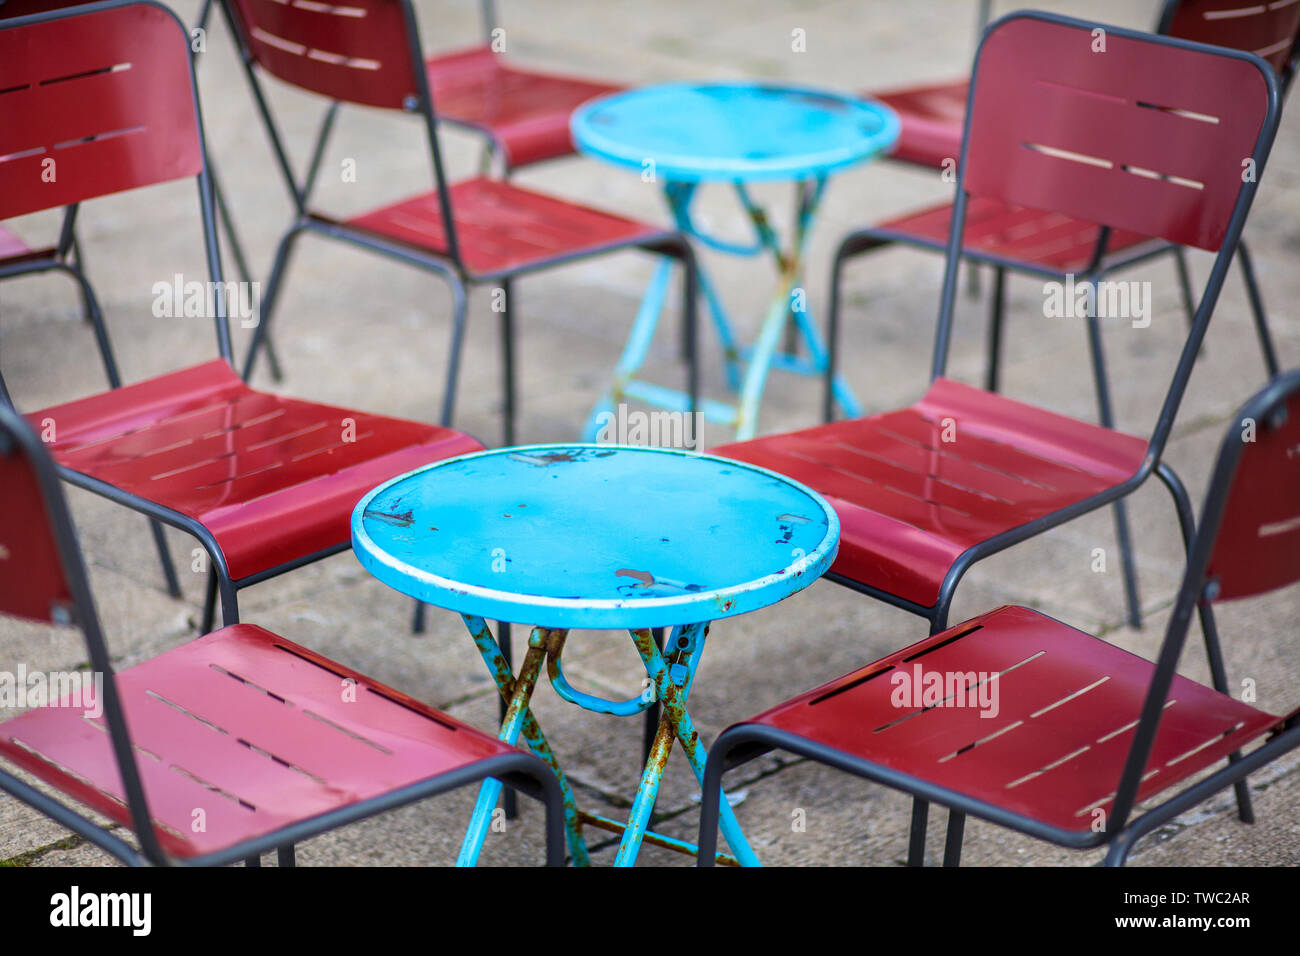 Picture of: Metal Blue And Red Cafe Chairs And Round Tables Stock Photo Alamy